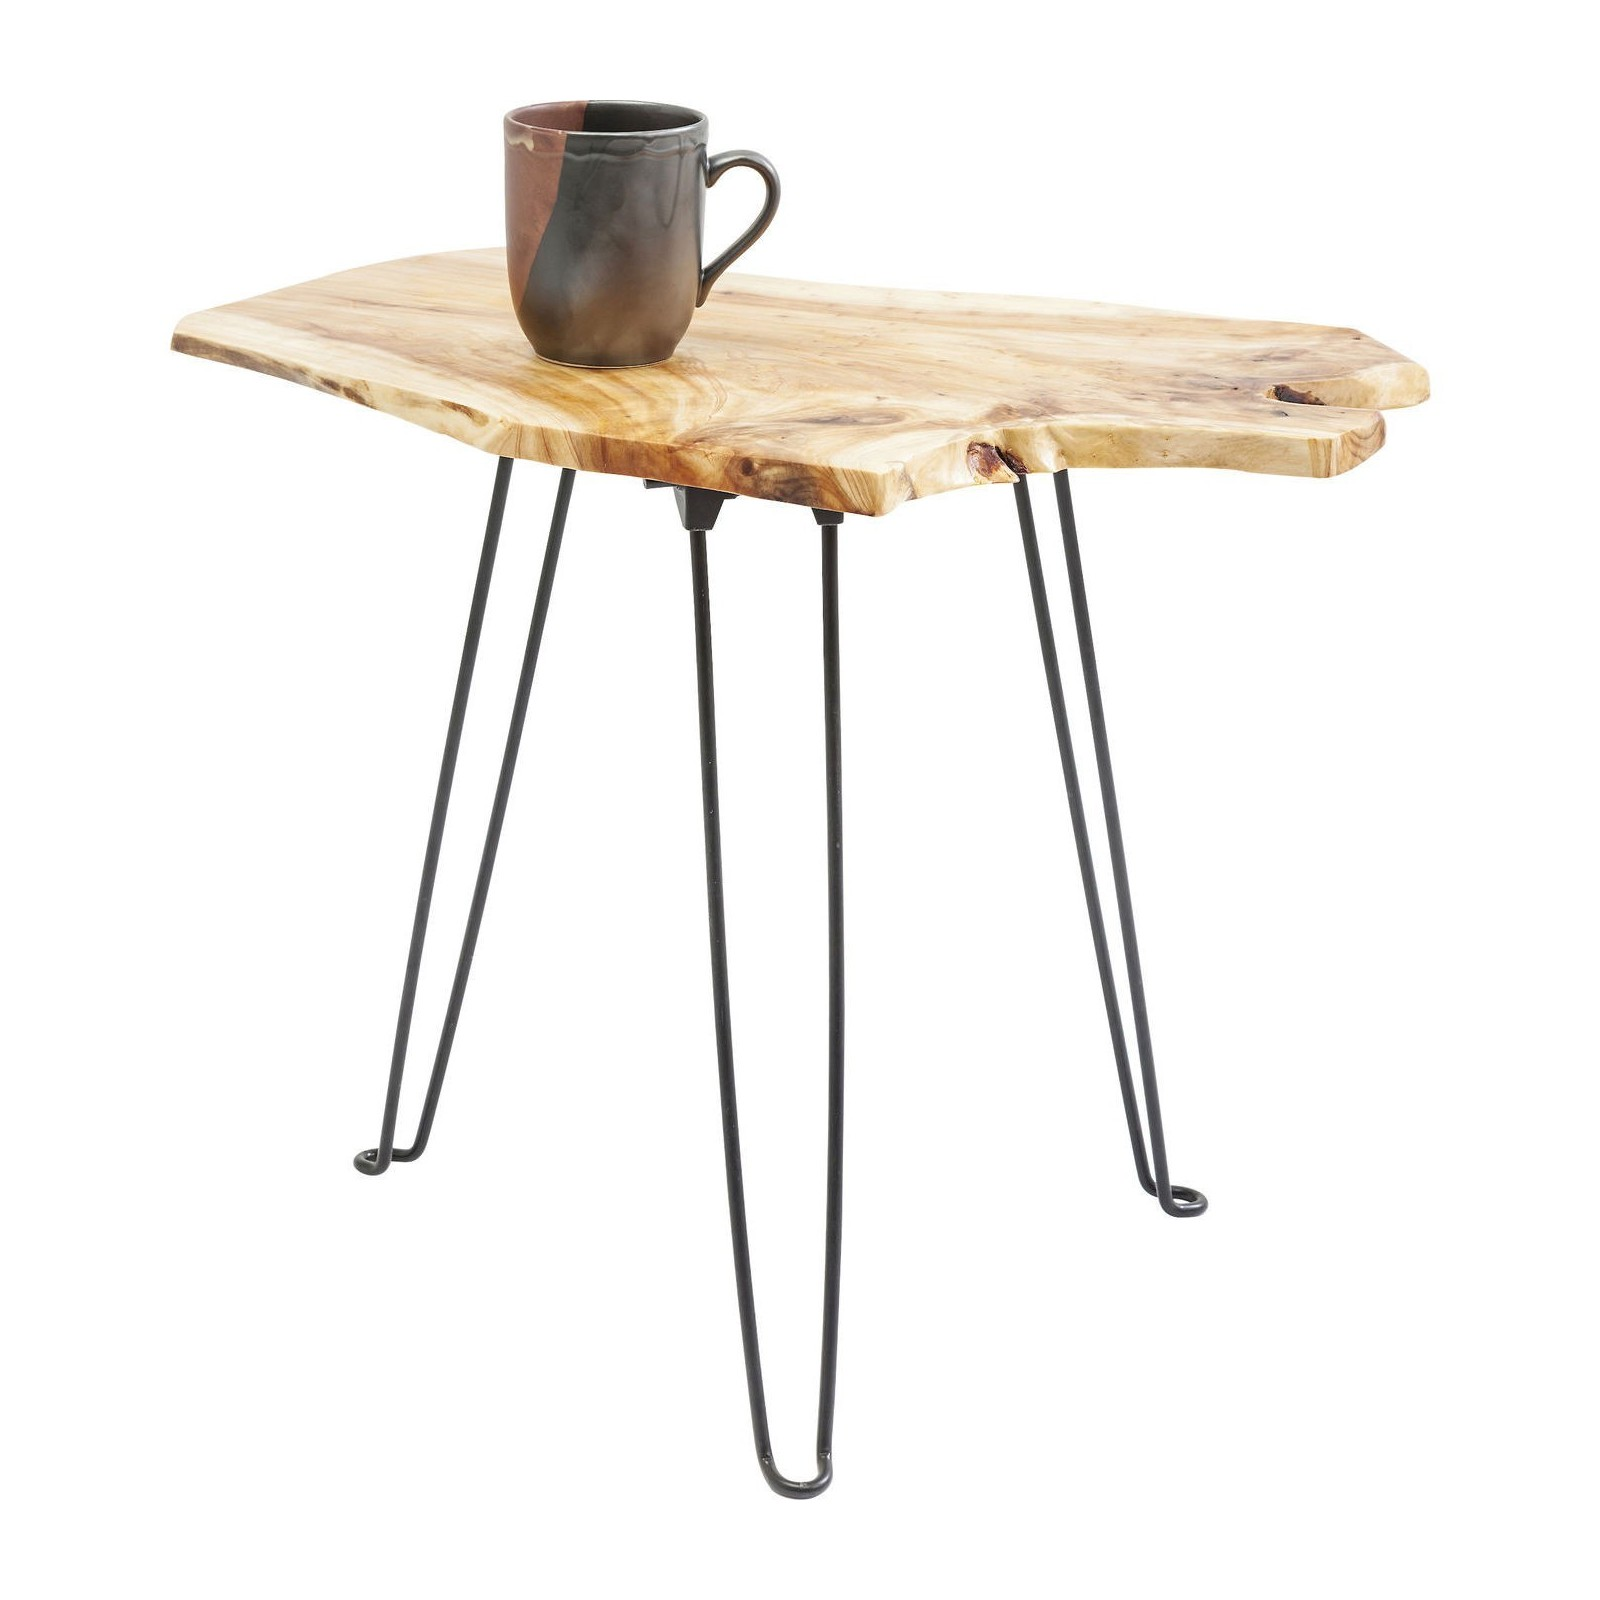 Table d 39 appoint art factory kare design - Tables d appoint design ...